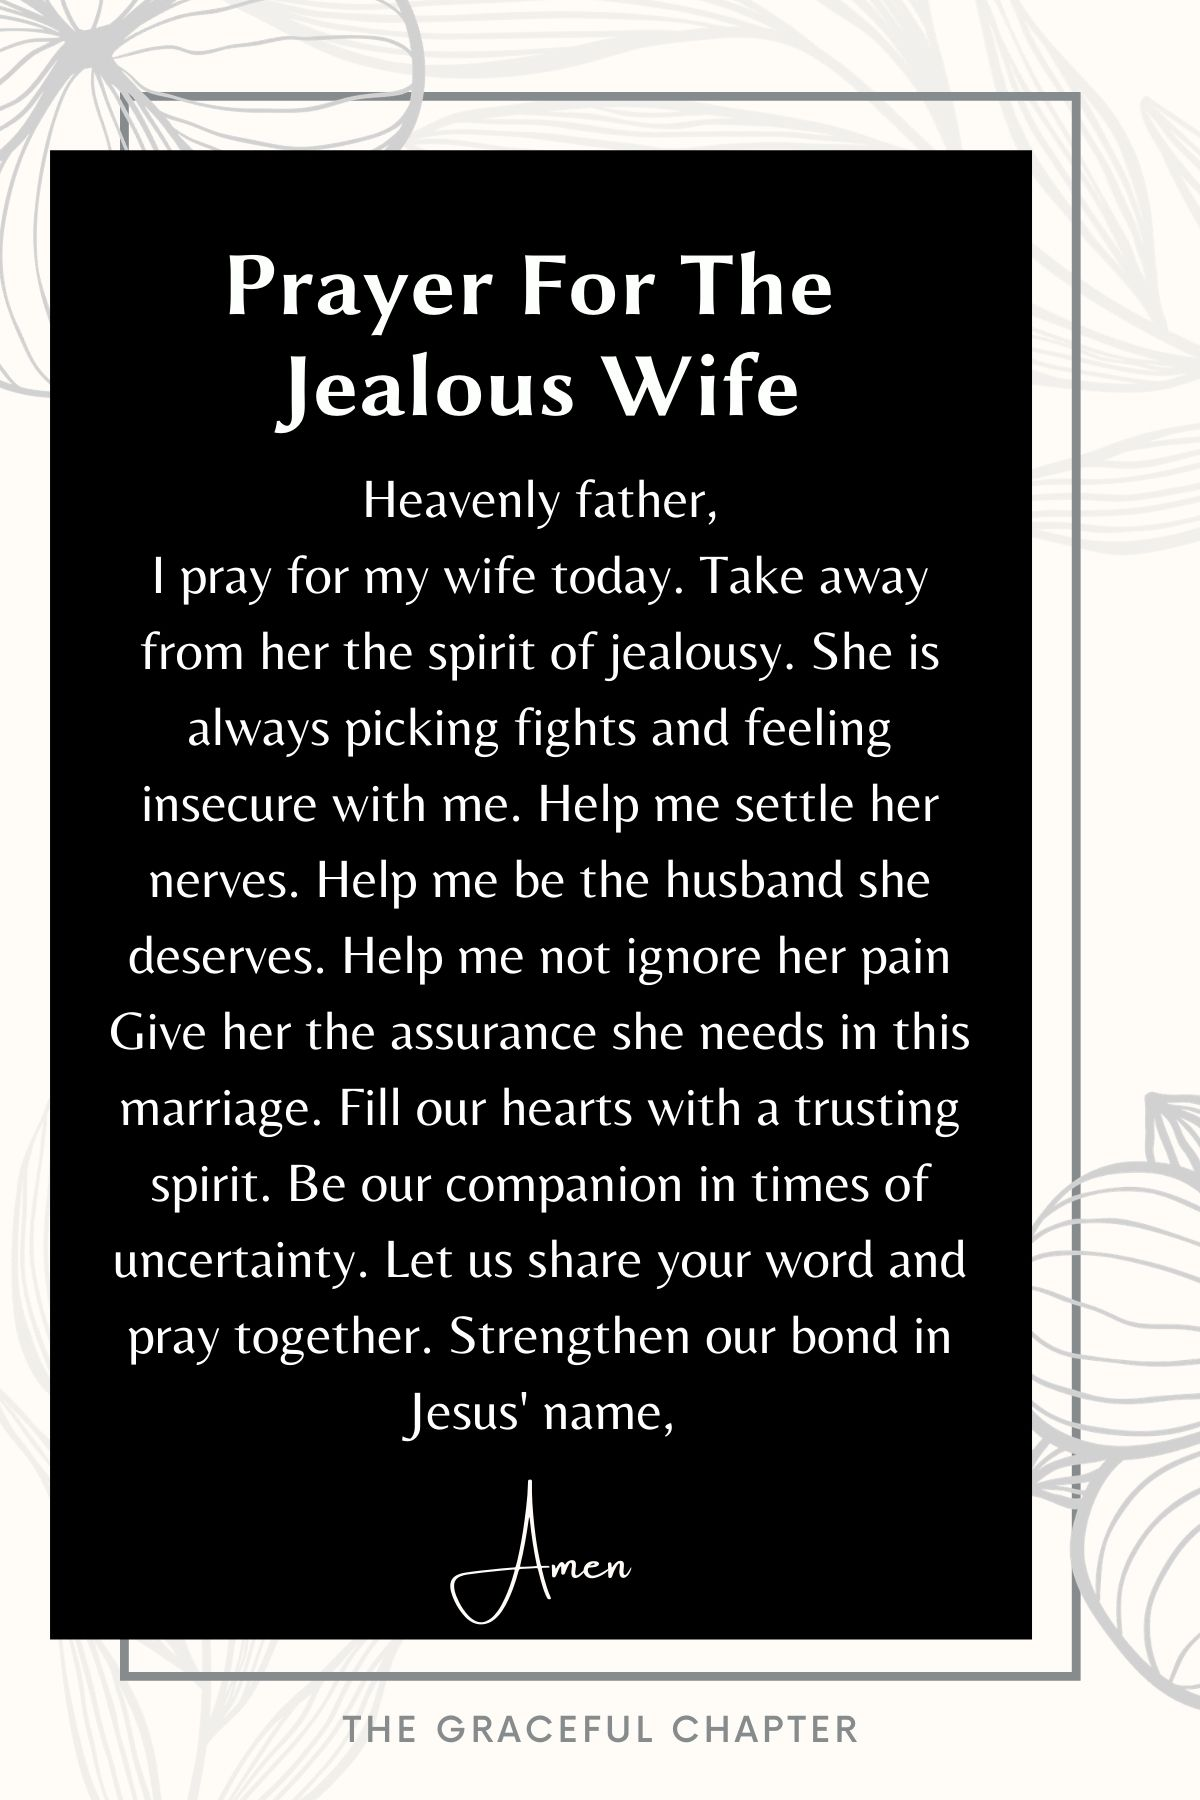 Prayer for the jealous wife